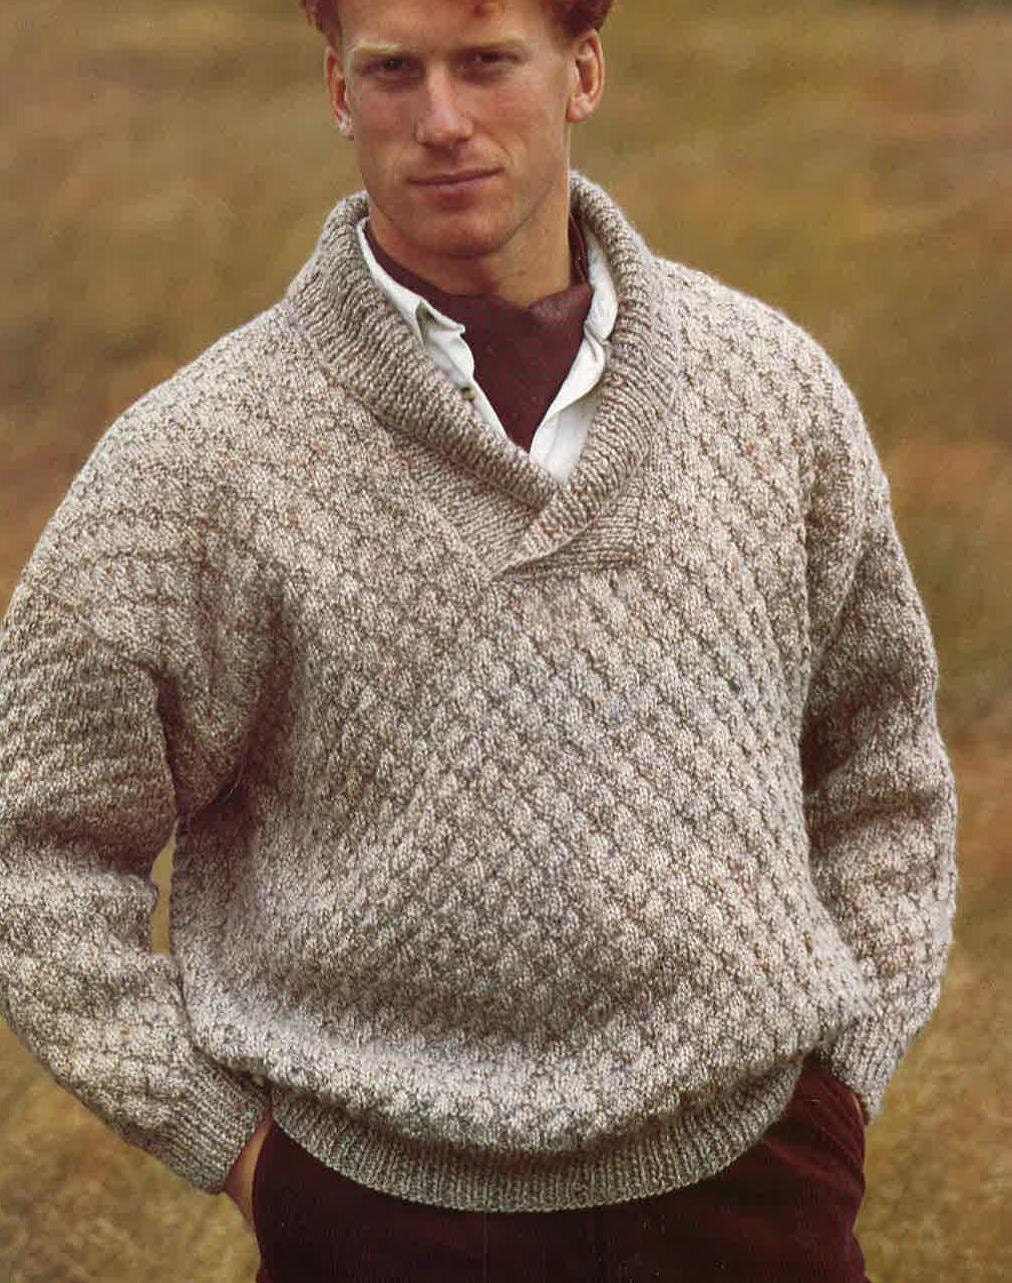 Description. Men\u0027s Sweater Knitting Pattern